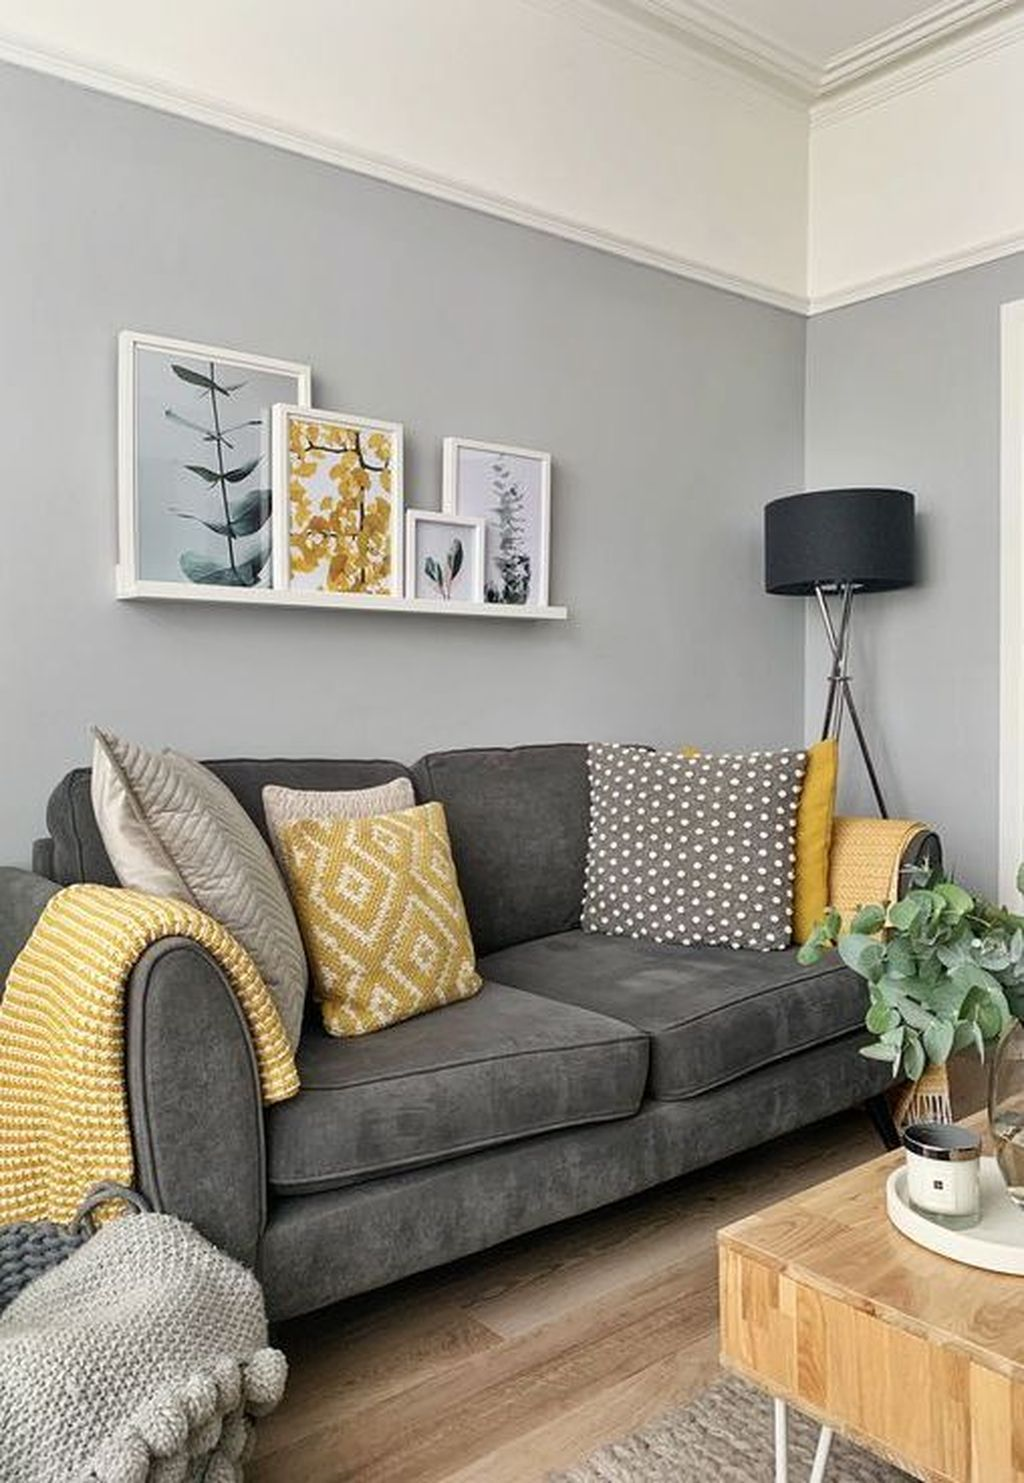 32 Charming Living Room Decorating Ideas With Grey Color To Try Asap In 2020 Living Room Decor Gray Yellow Living Room Home Living Room